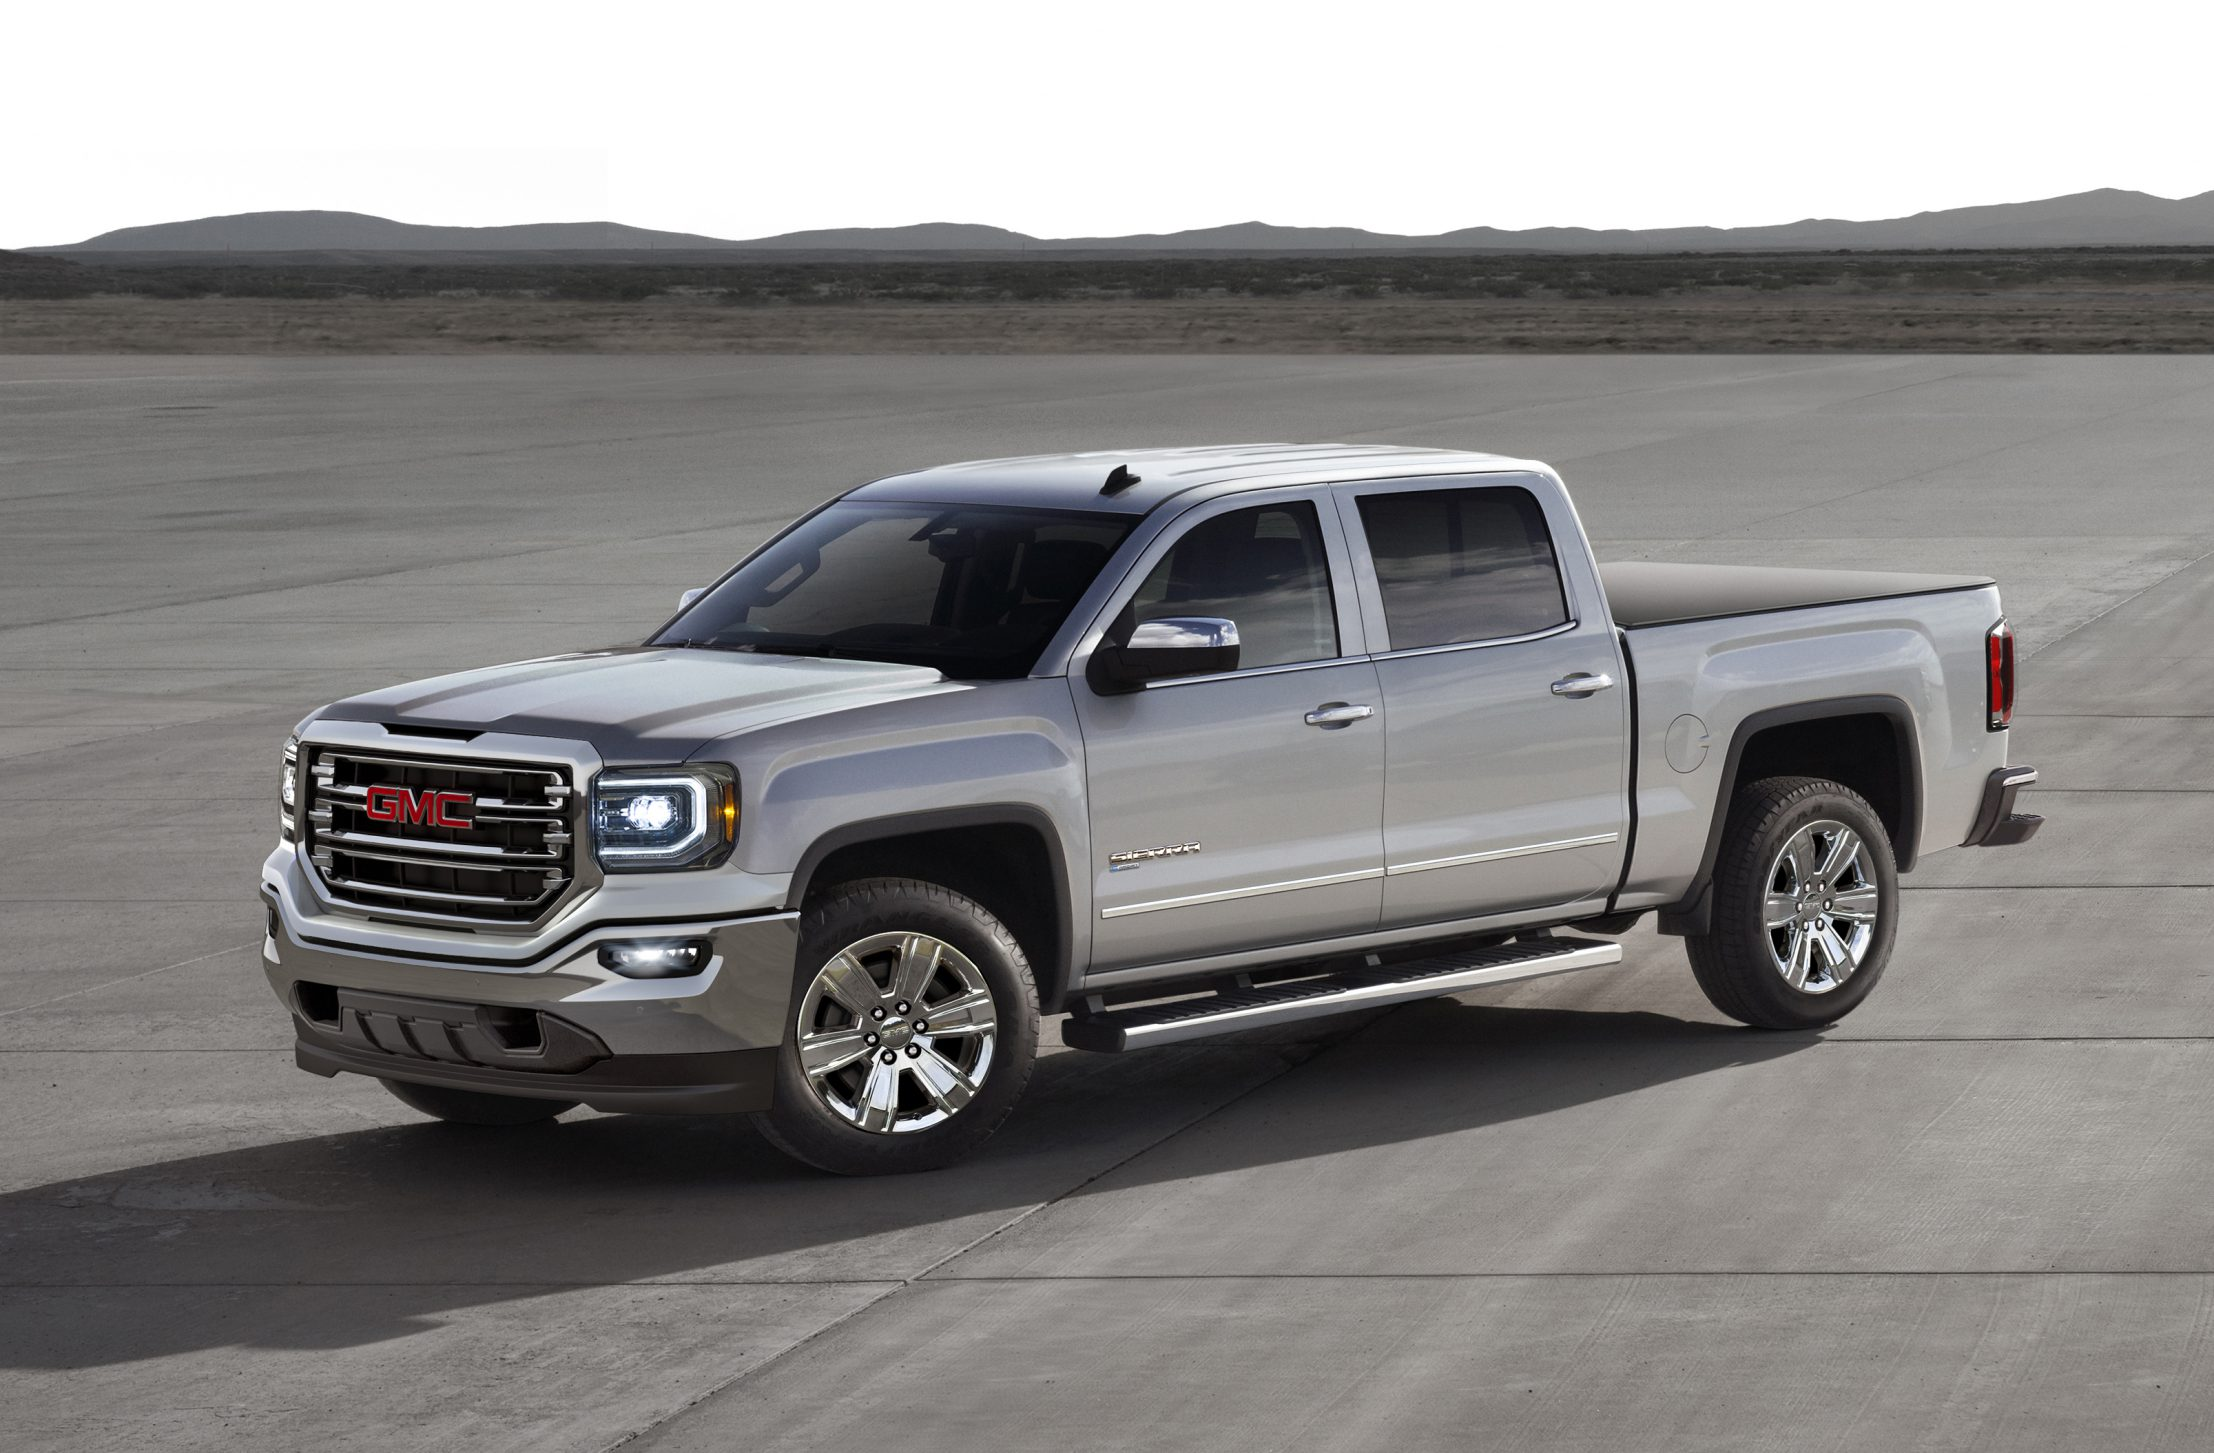 Gm faces catastrophic assembly disruption after parts supplier goes bankrupt the truth about cars